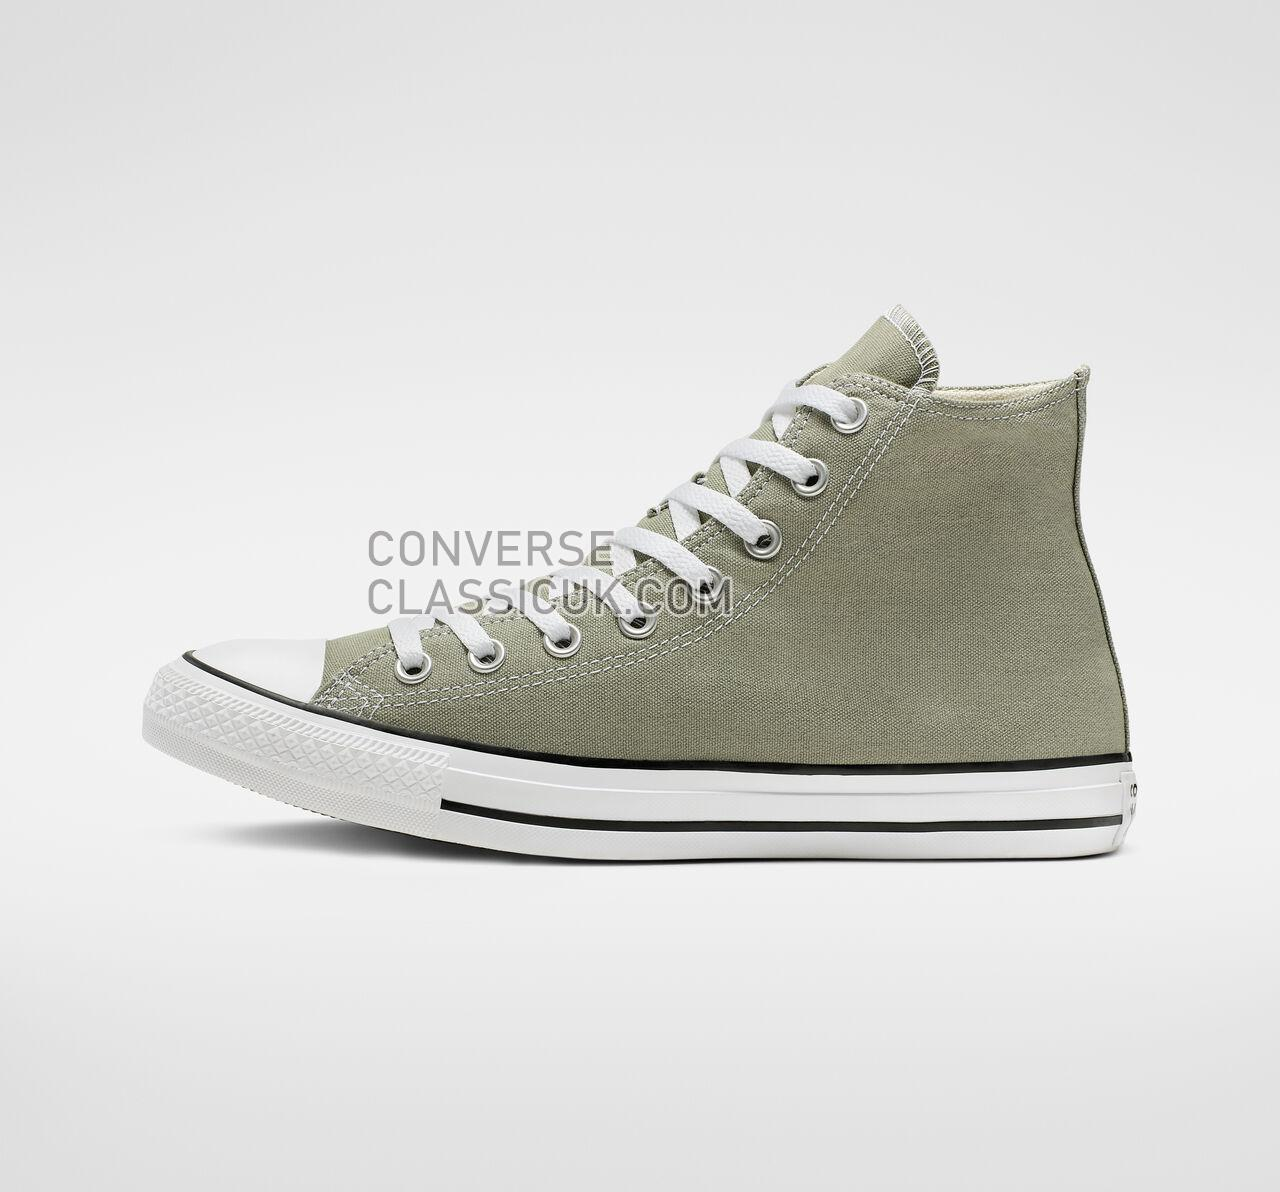 Converse Chuck Taylor All Star Seasonal Color High Top Mens Womens Unisex 164933F Jade Stone Shoes